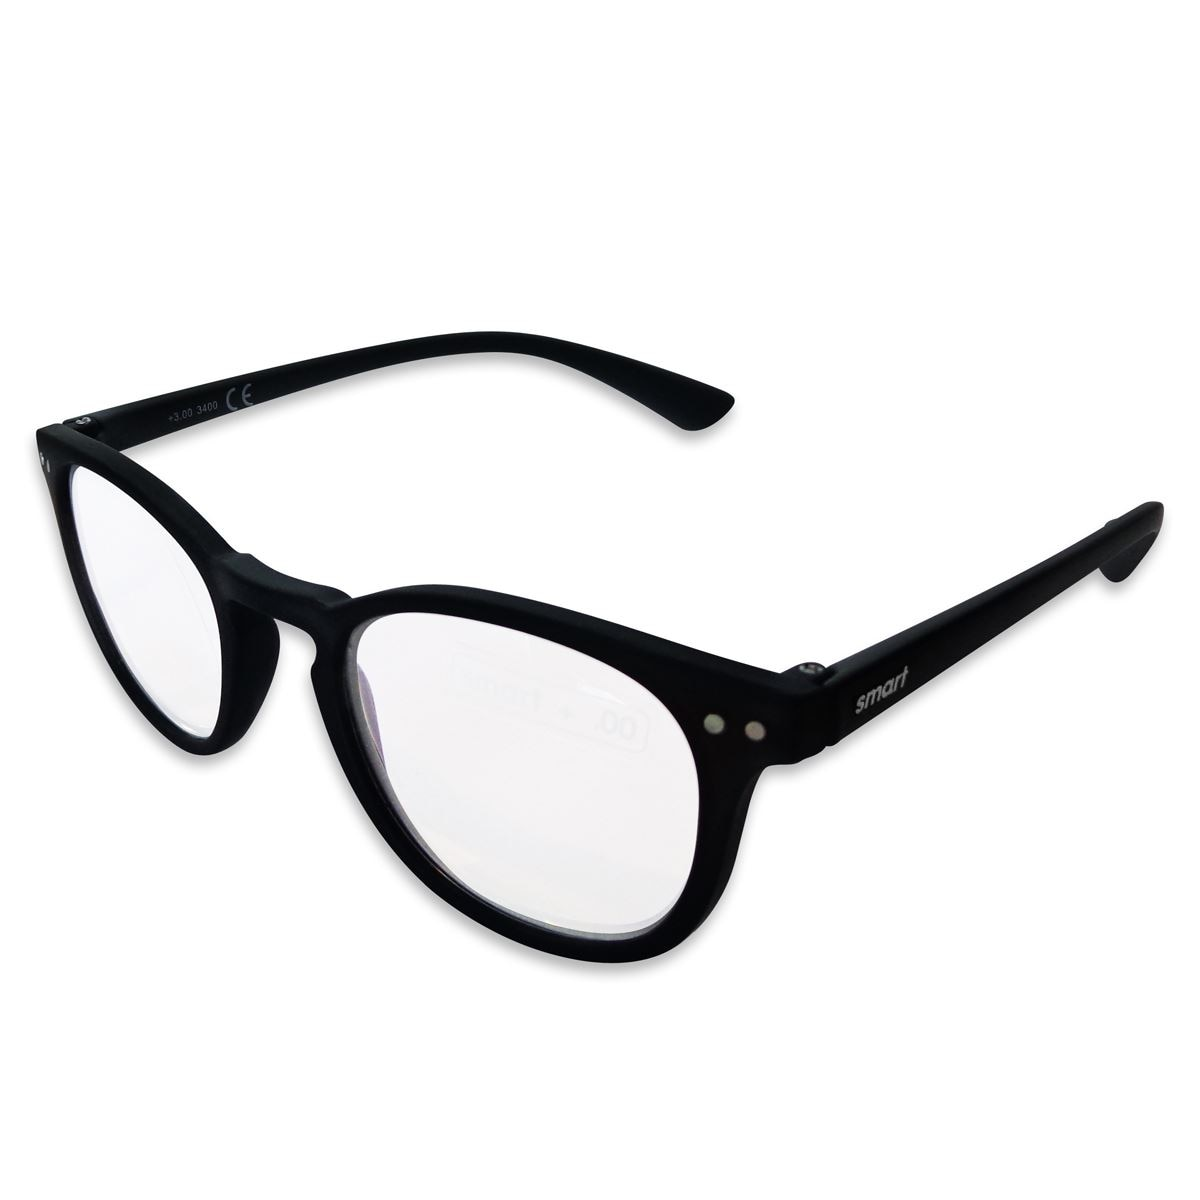 Lente pregraduado.smart reader round matt black +2.50  - Sanborns